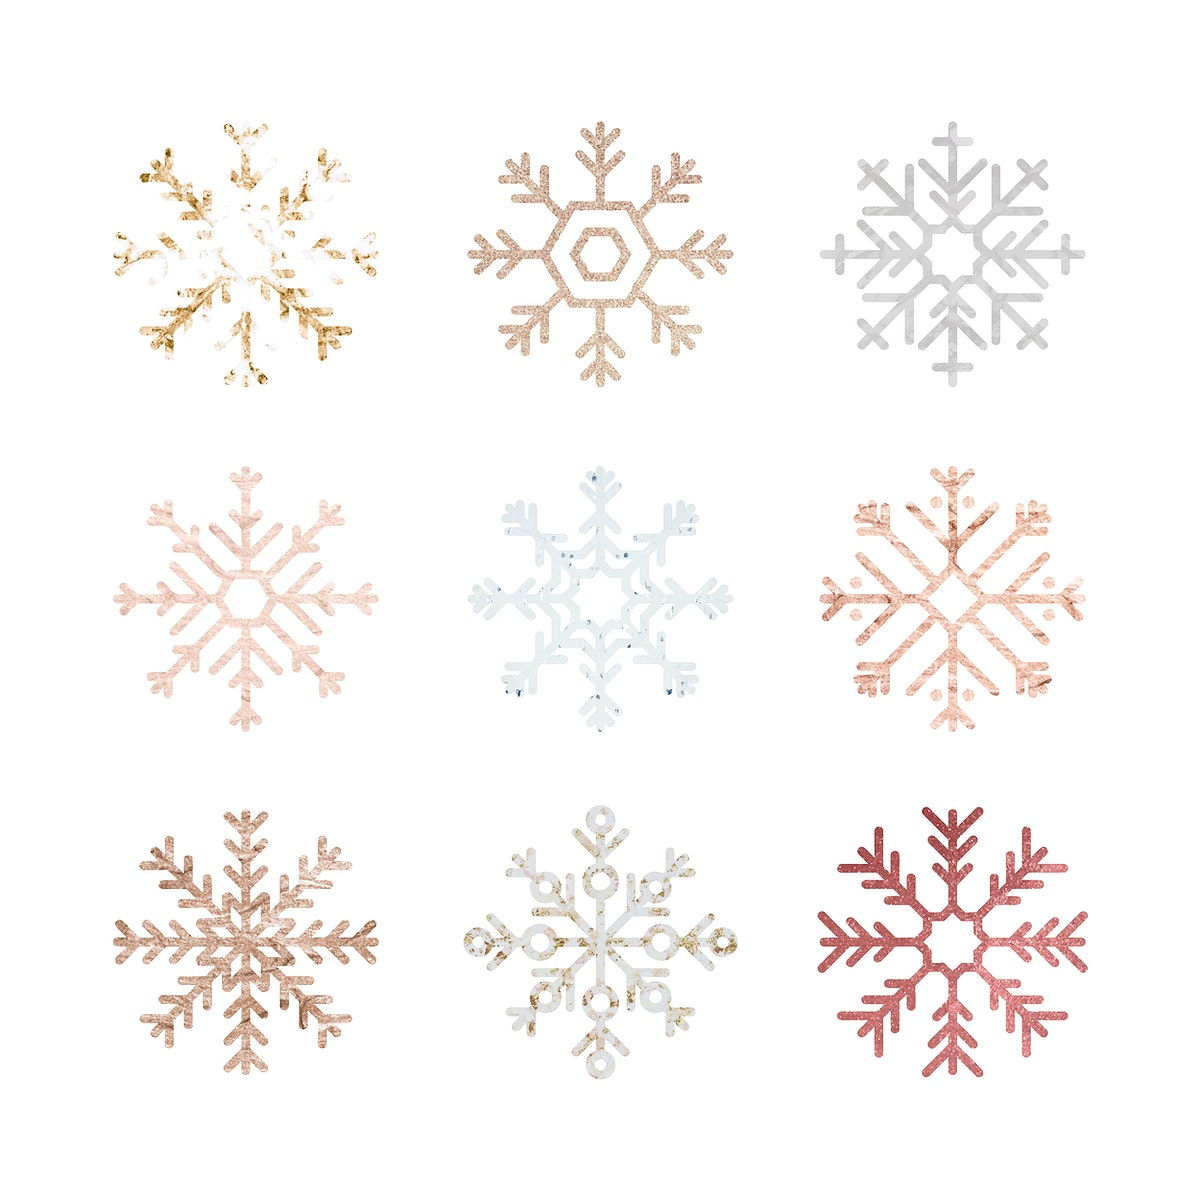 Christmas snowflakes decorative ornament collection vector